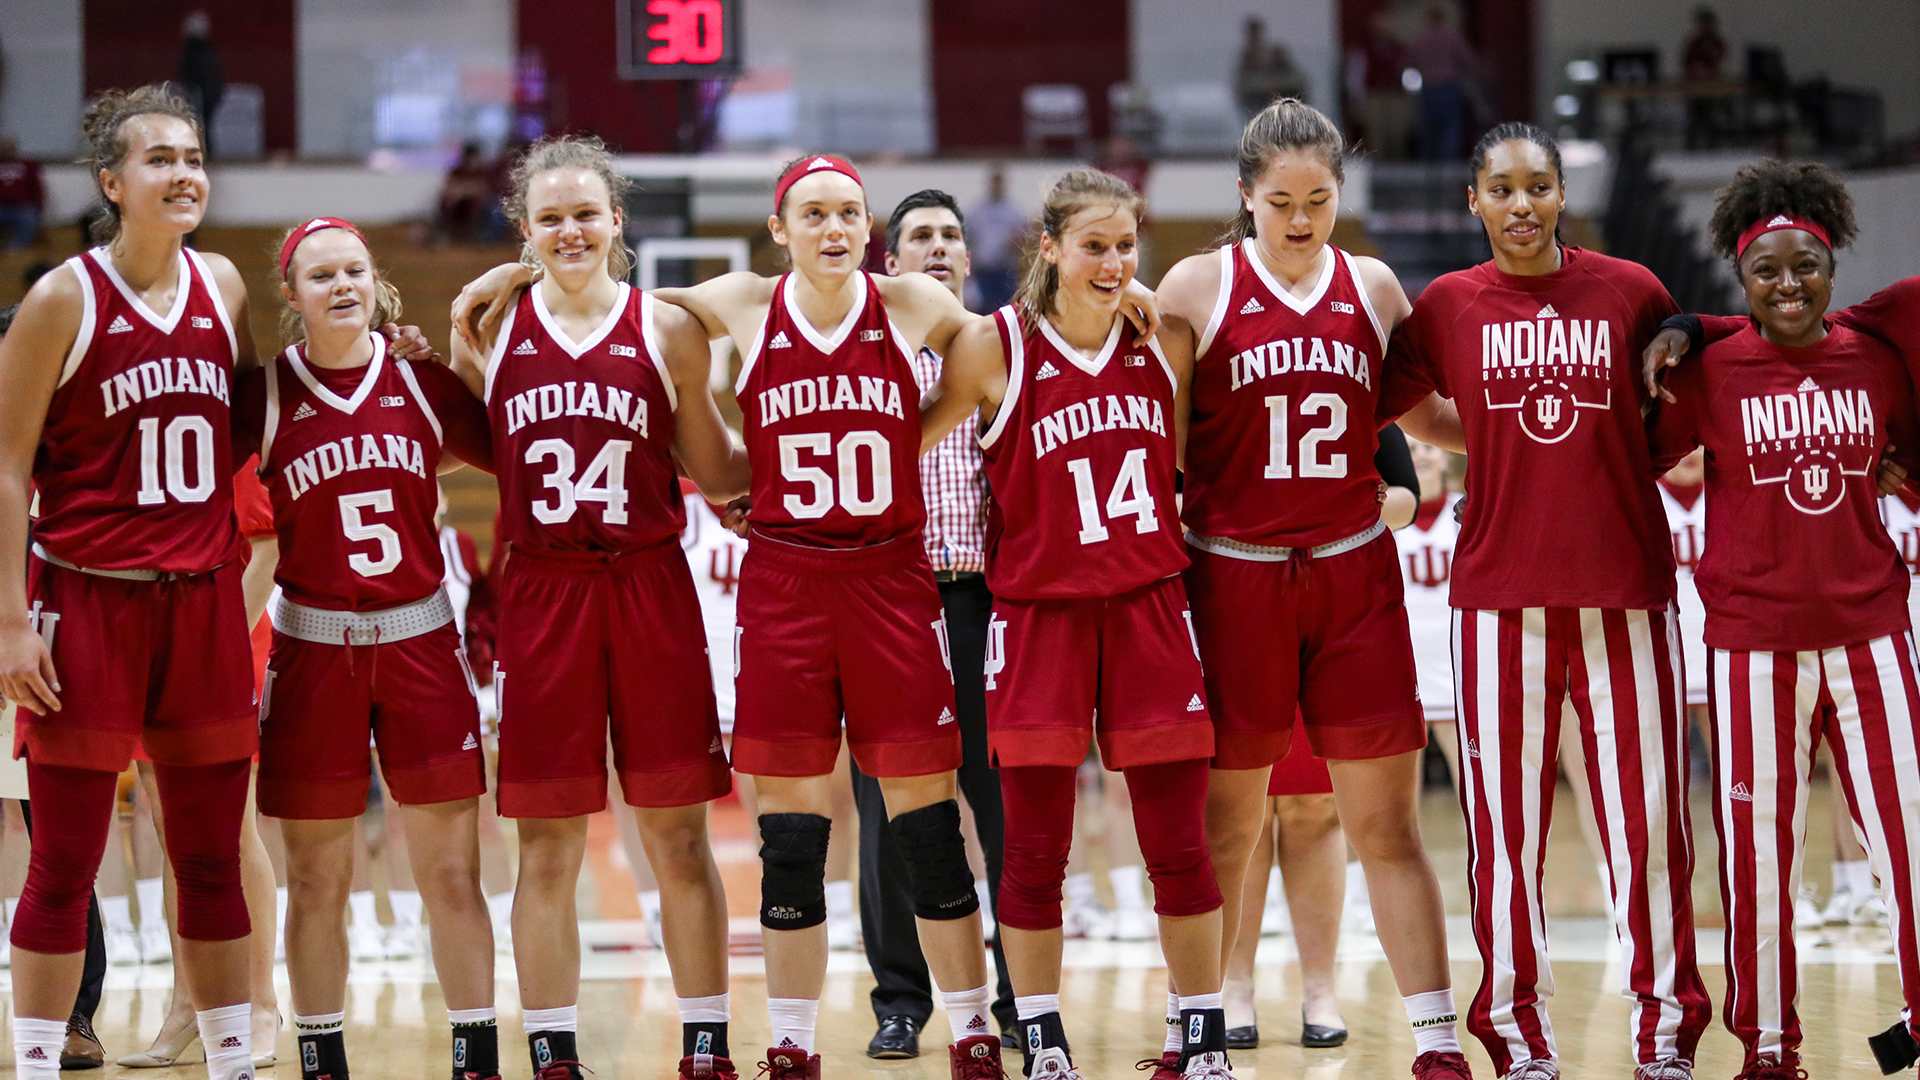 women's basketball - indiana university athletics